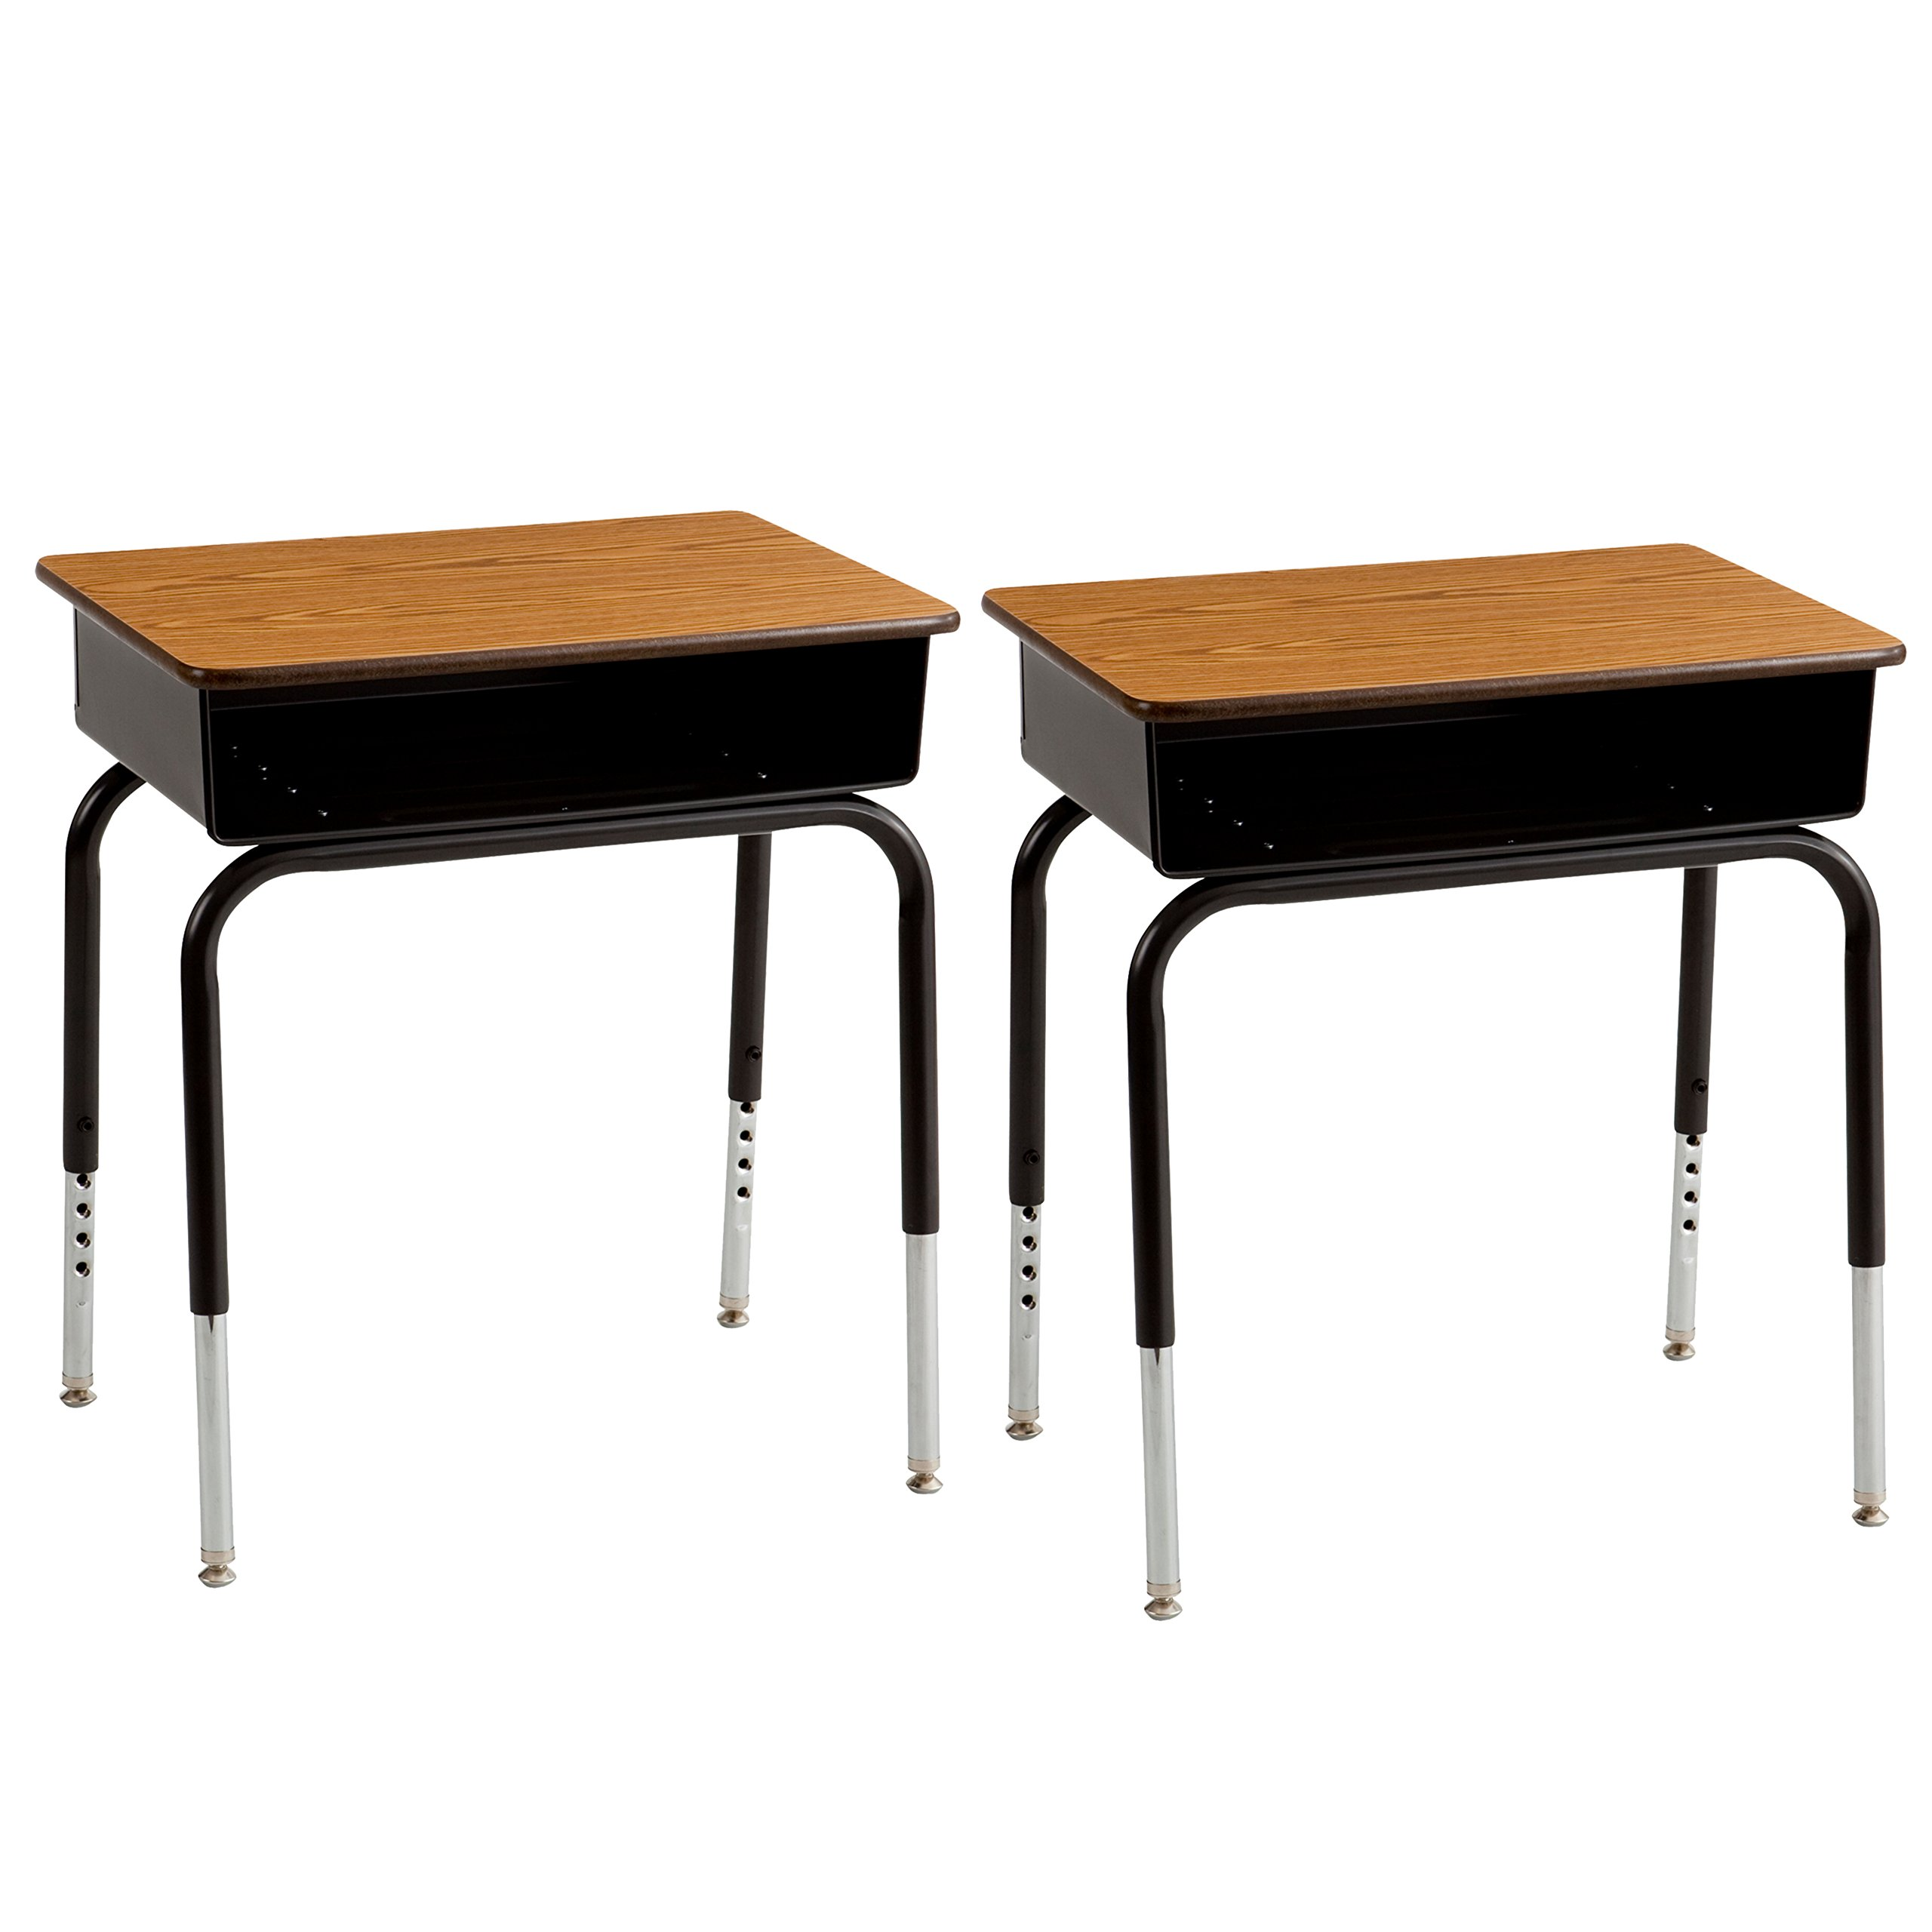 ECR4Kids 24'' x 18'' Adjustable Open Front Student Desk with Metal Book Box, Oak and Black (2-PacK)